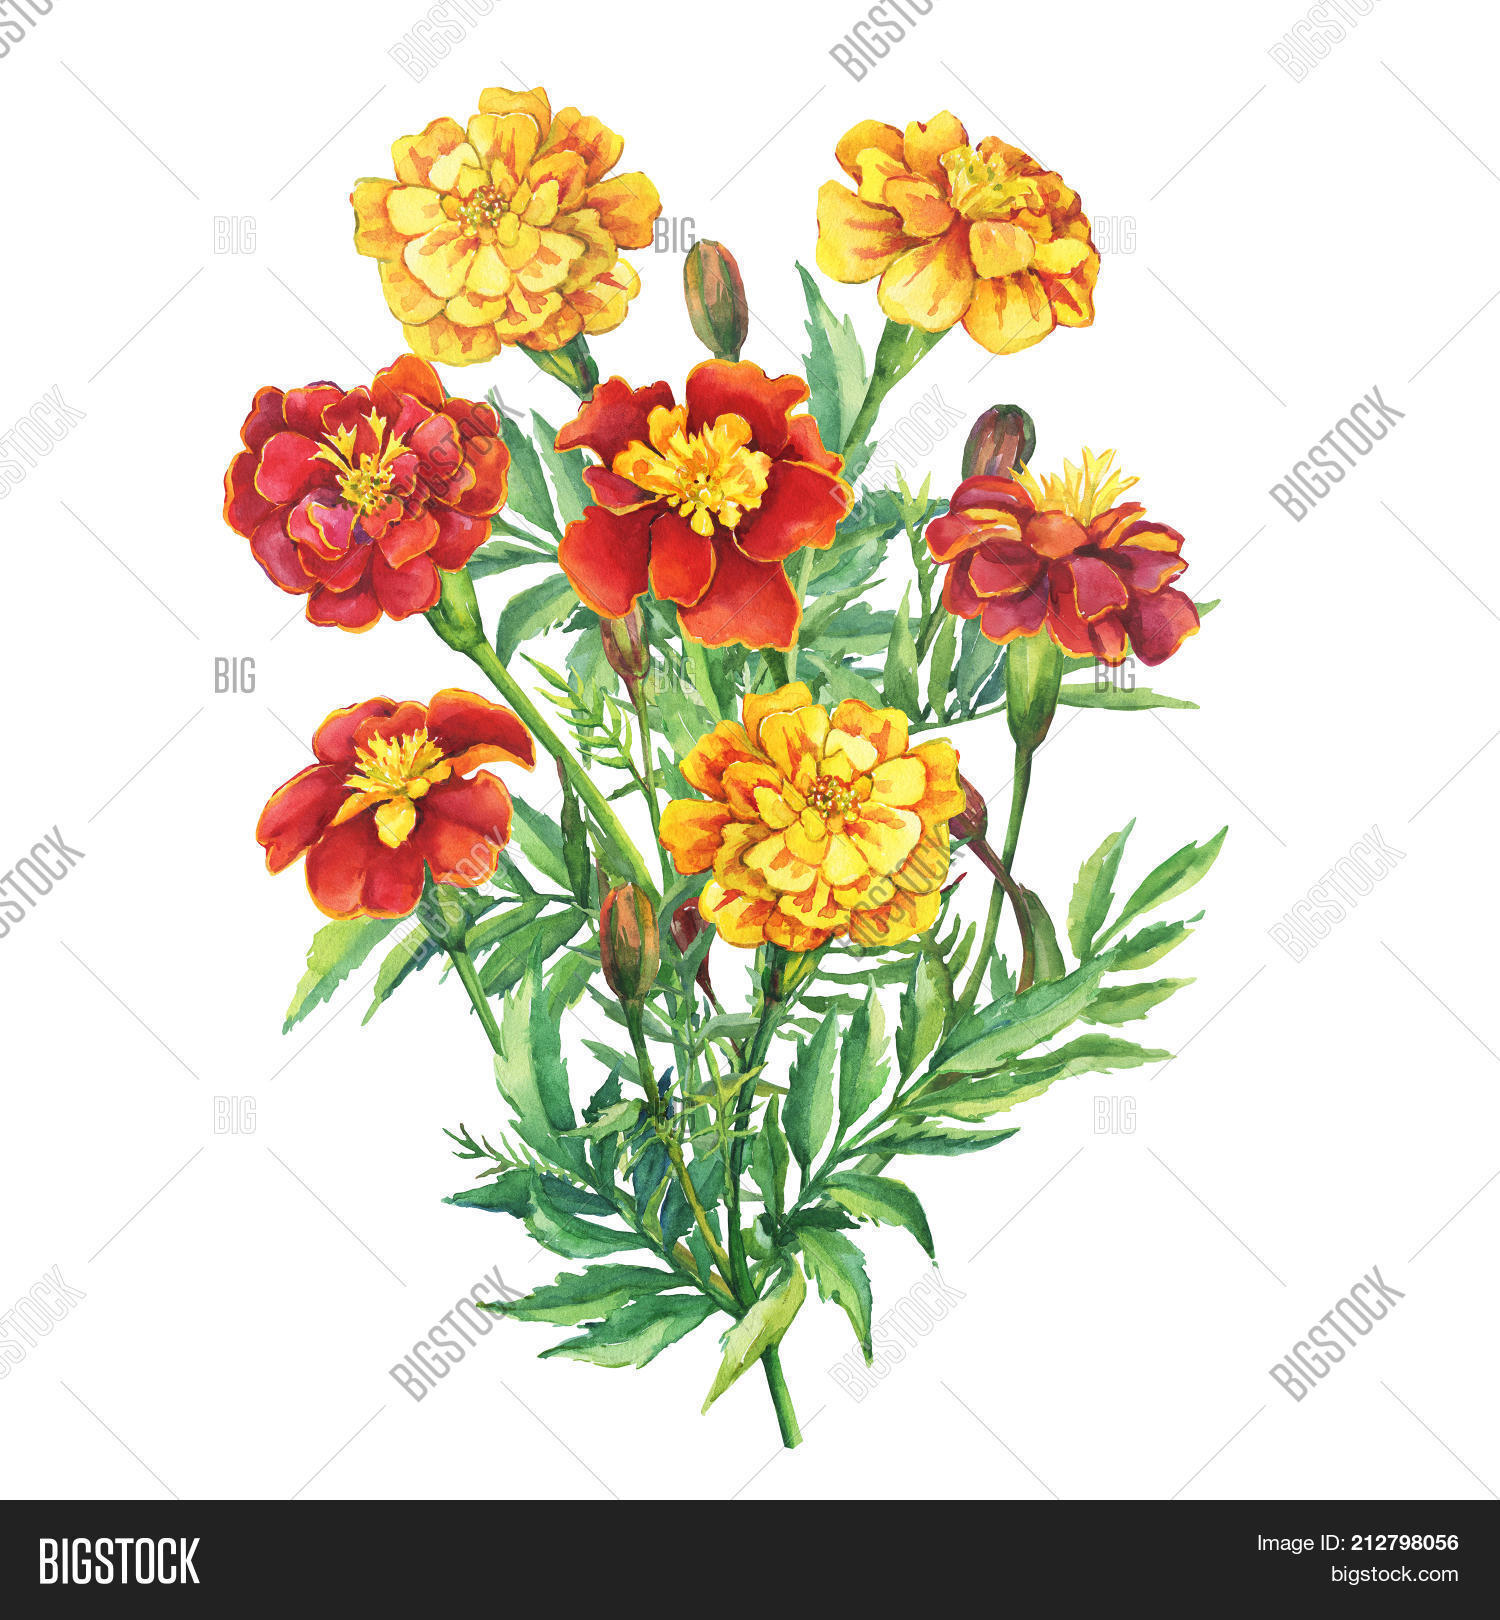 Bouquet Flowers Image Photo Free Trial Bigstock